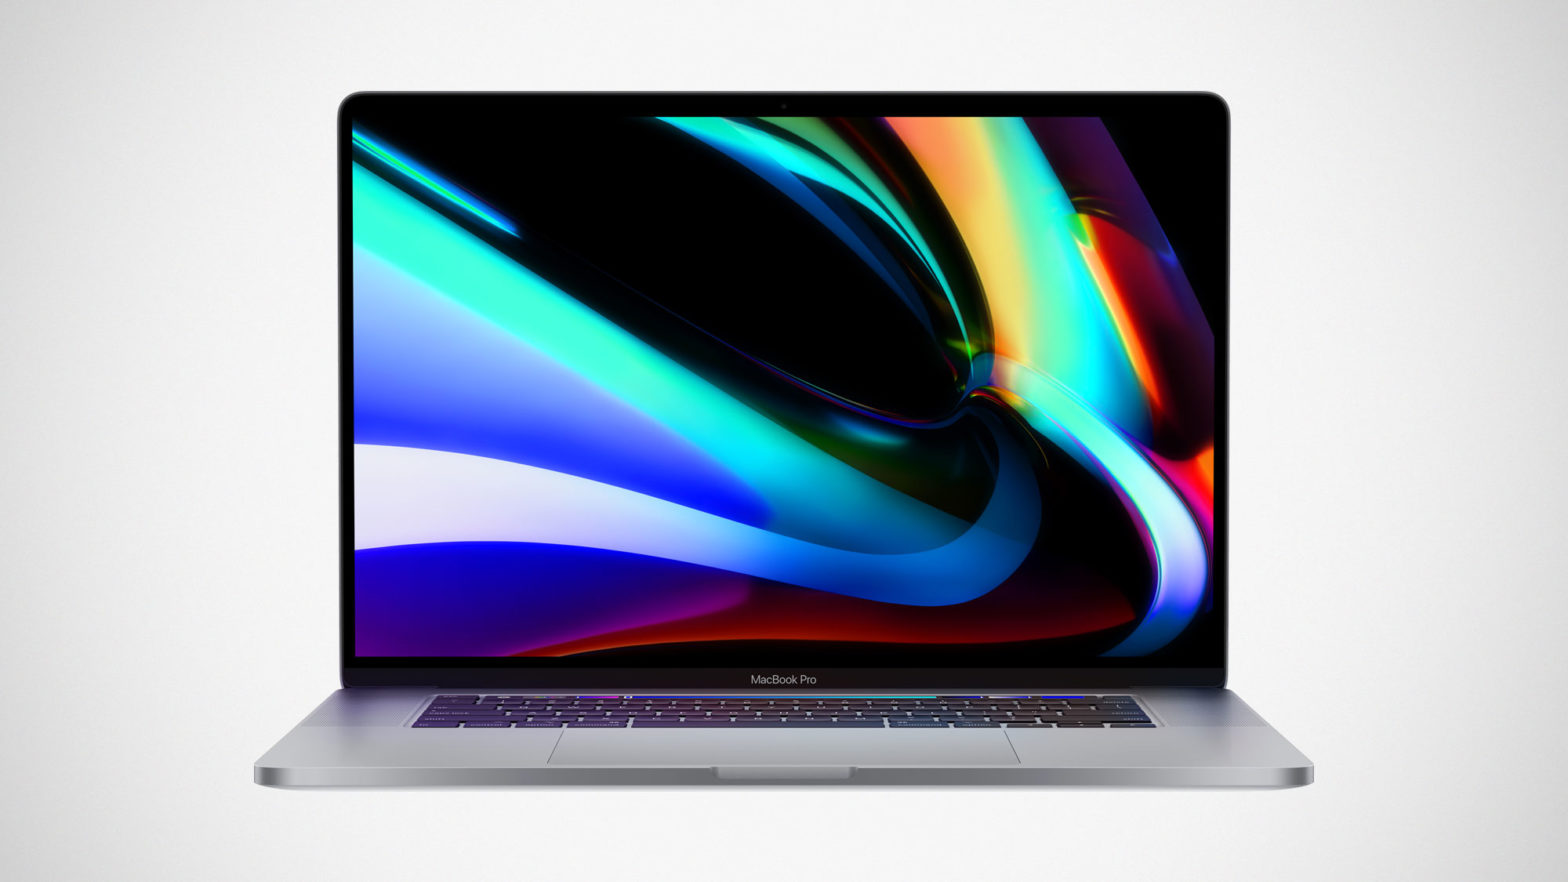 Apple 16-inch MacBook Pro Laptop